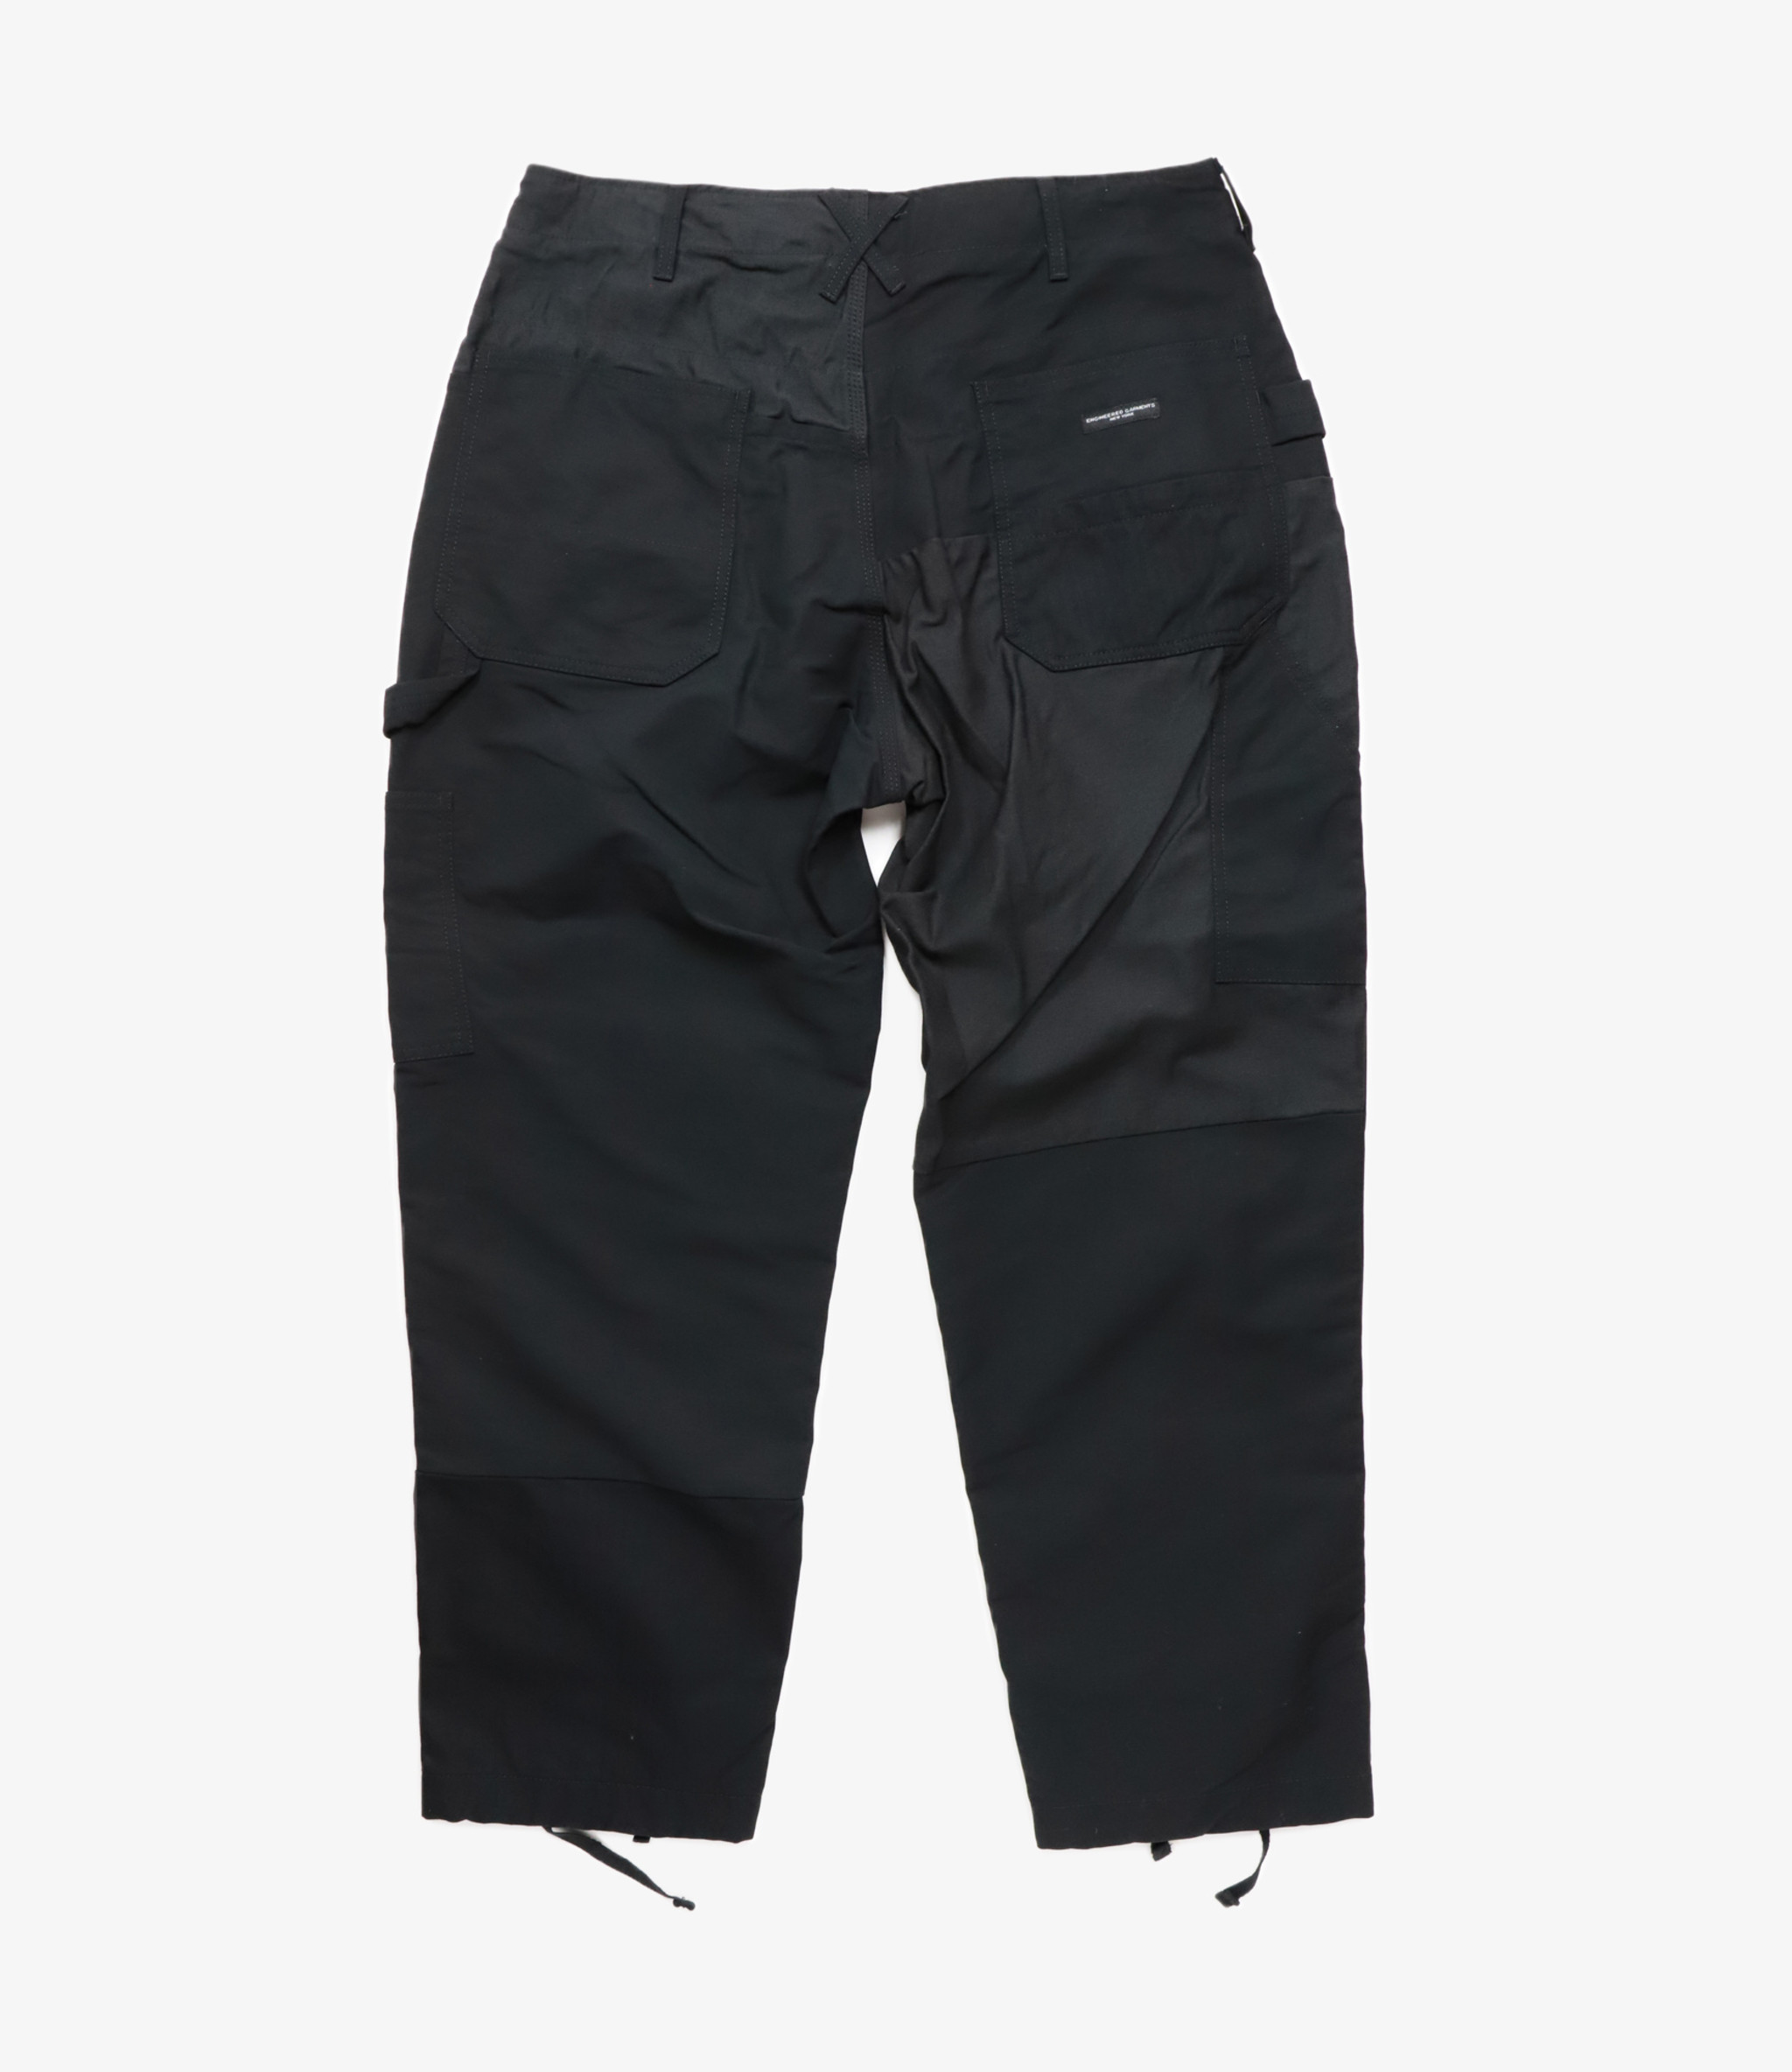 Engineered Garments Painter Pant - Black Cotton Double Cloth